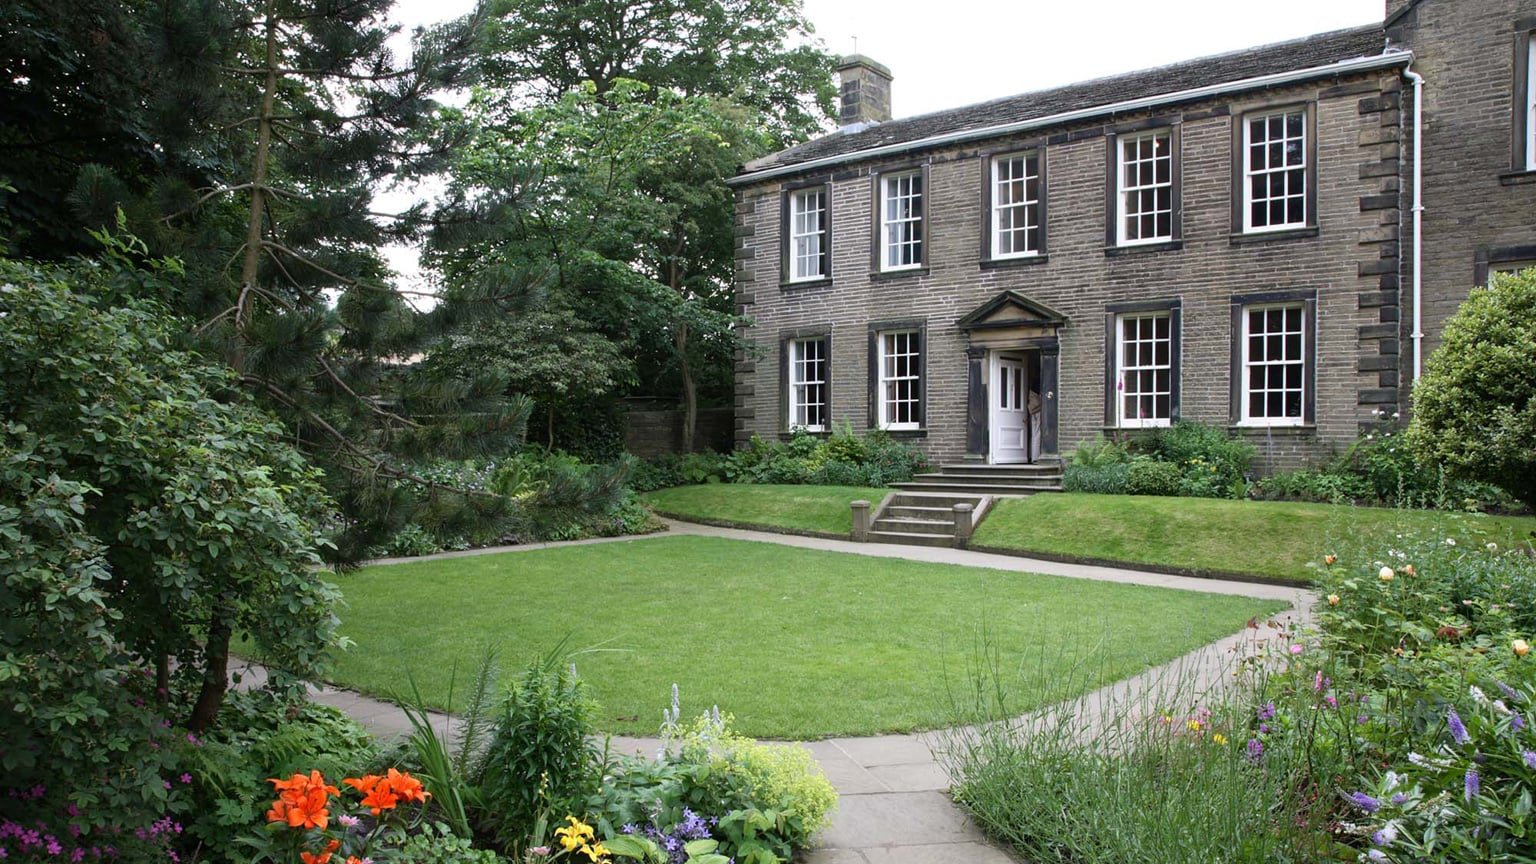 Brontë Parsonage Museum. Free entry with National Art Pass -